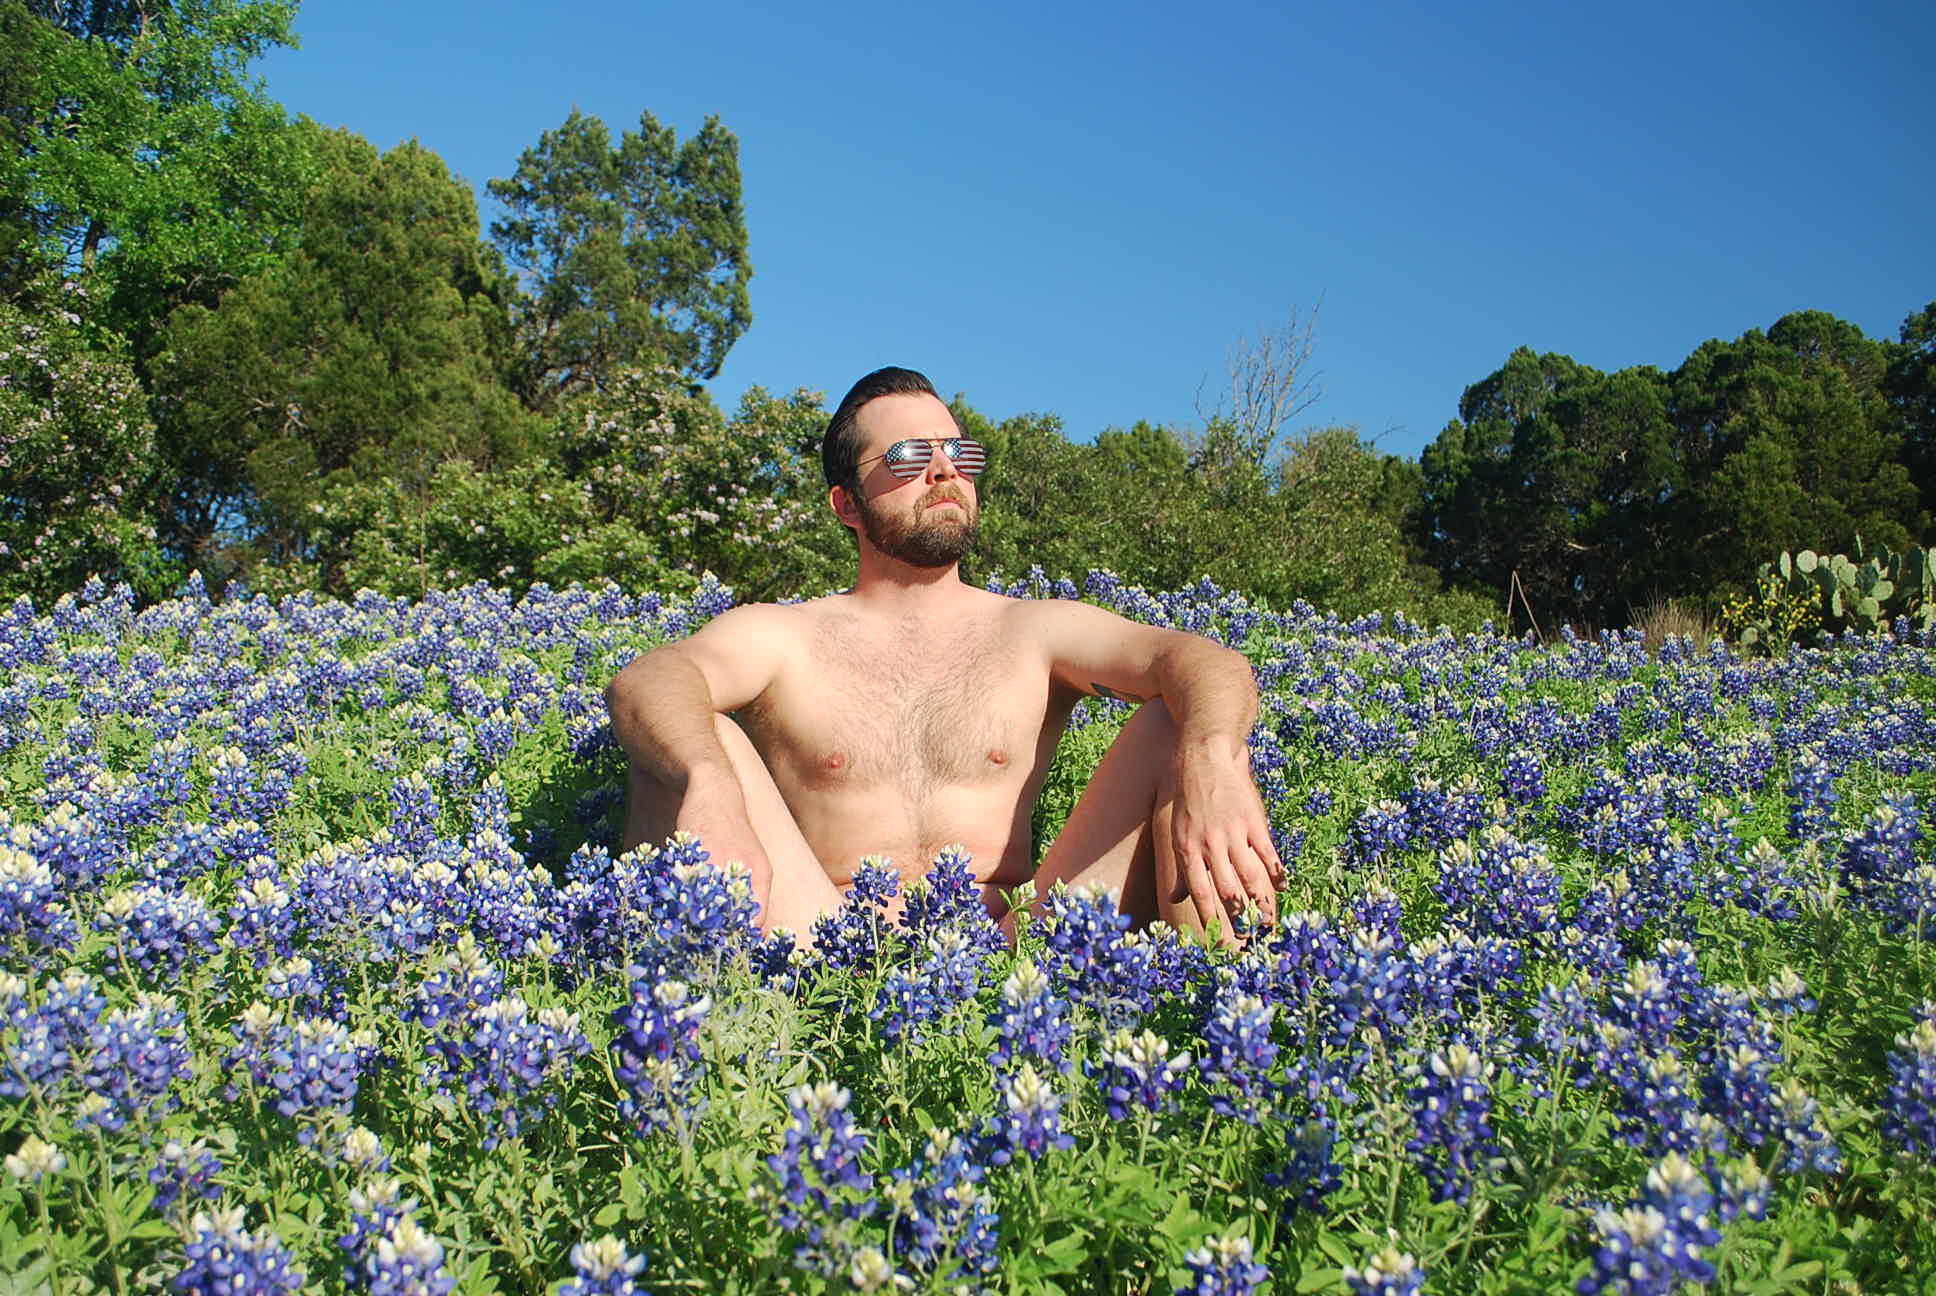 The Owner Of Austin Key Guy Loves Bluebonnets WAY Too Much